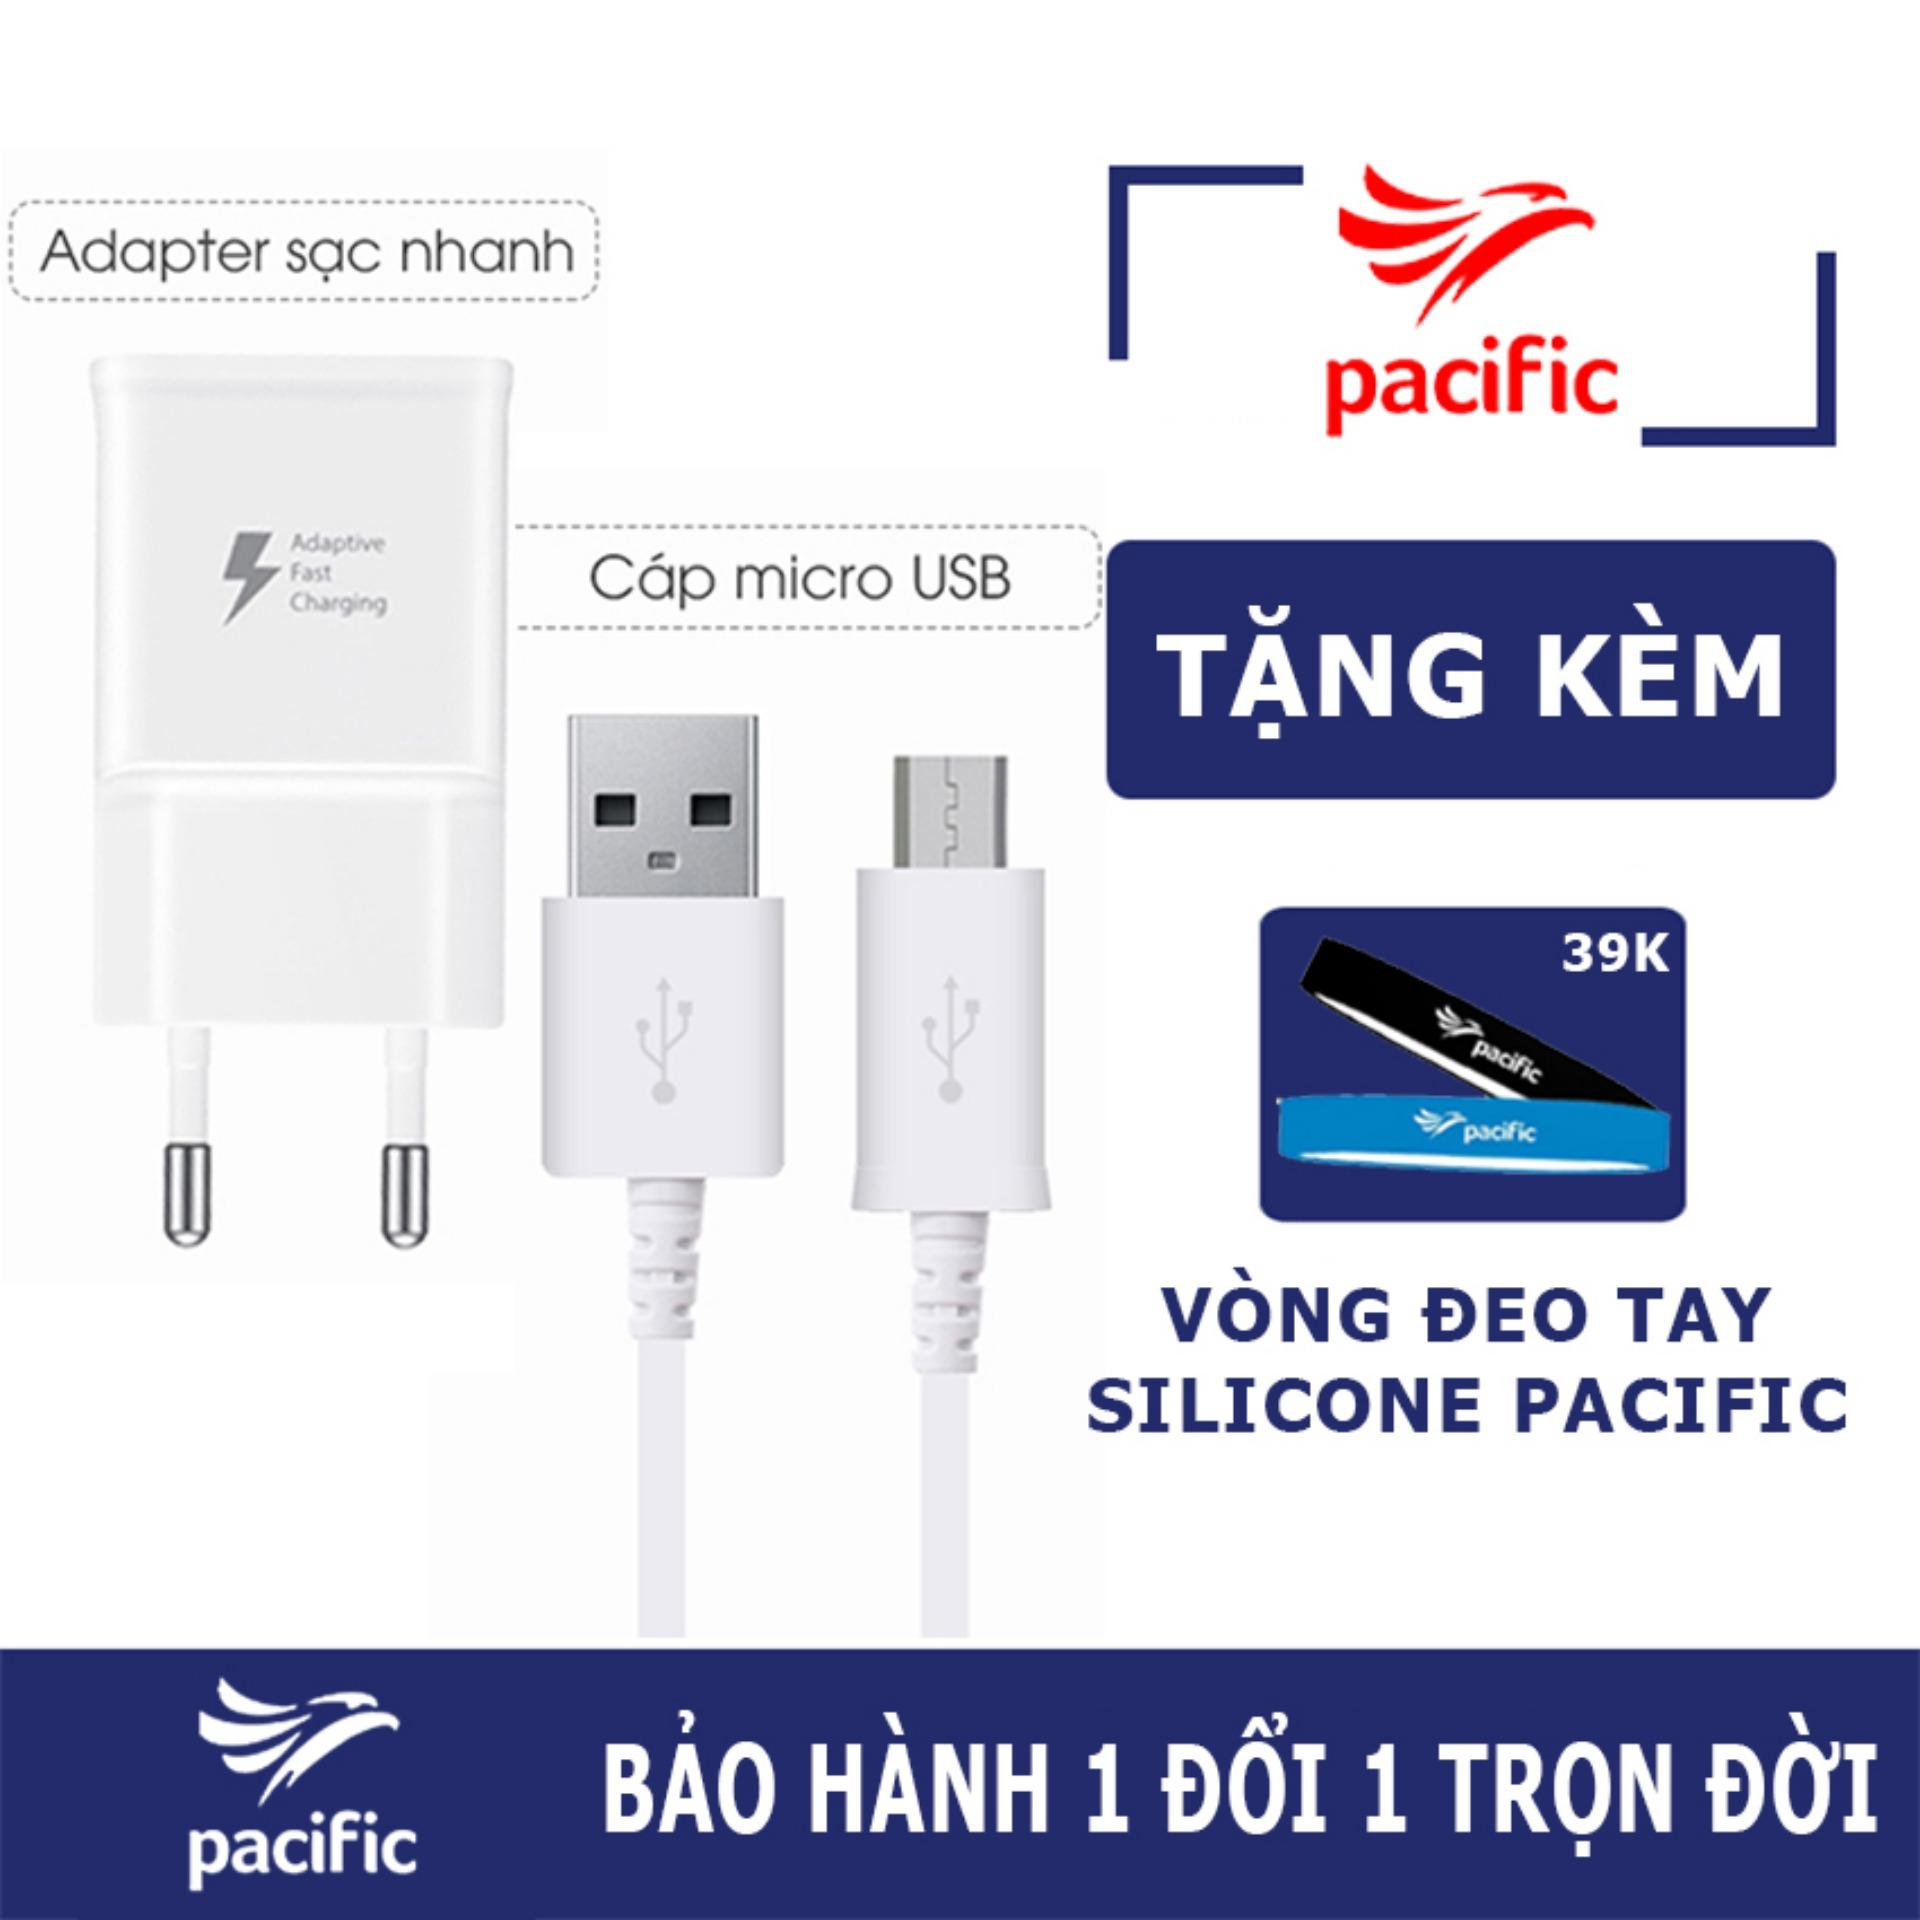 Bộ sạc nhanh Fast Charge cho Samsung Galaxy S5, S6, S7, NOTE4, NOTE5 - Tặng Vòng đeo tay Silicone Pacific